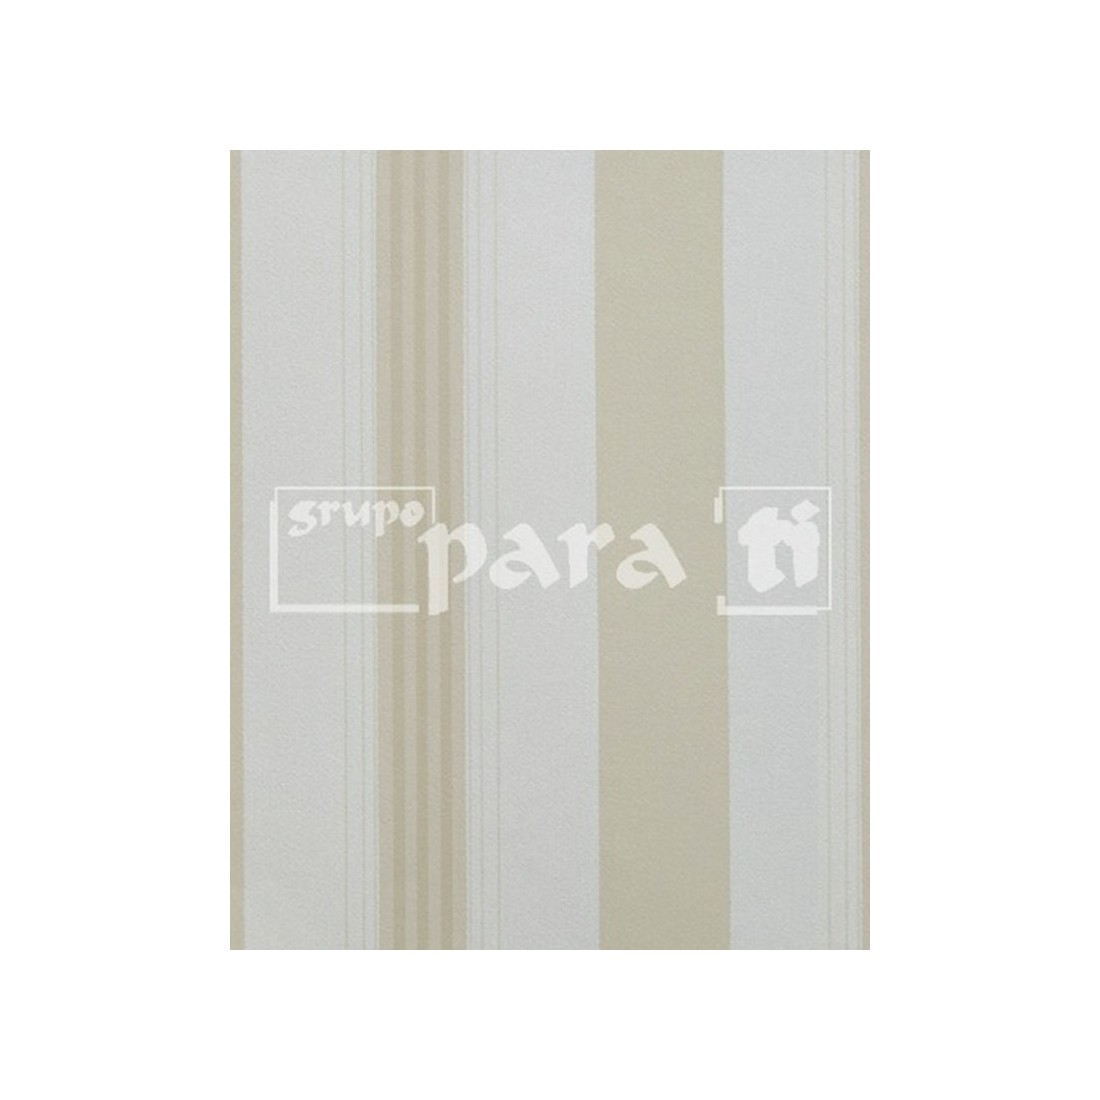 excellent cool great papel pintado replik a with papeles pintados rayas verticales with papel pintado rayas verticales with papeles pintados rayas - Papel Pintado Rayas Verticales